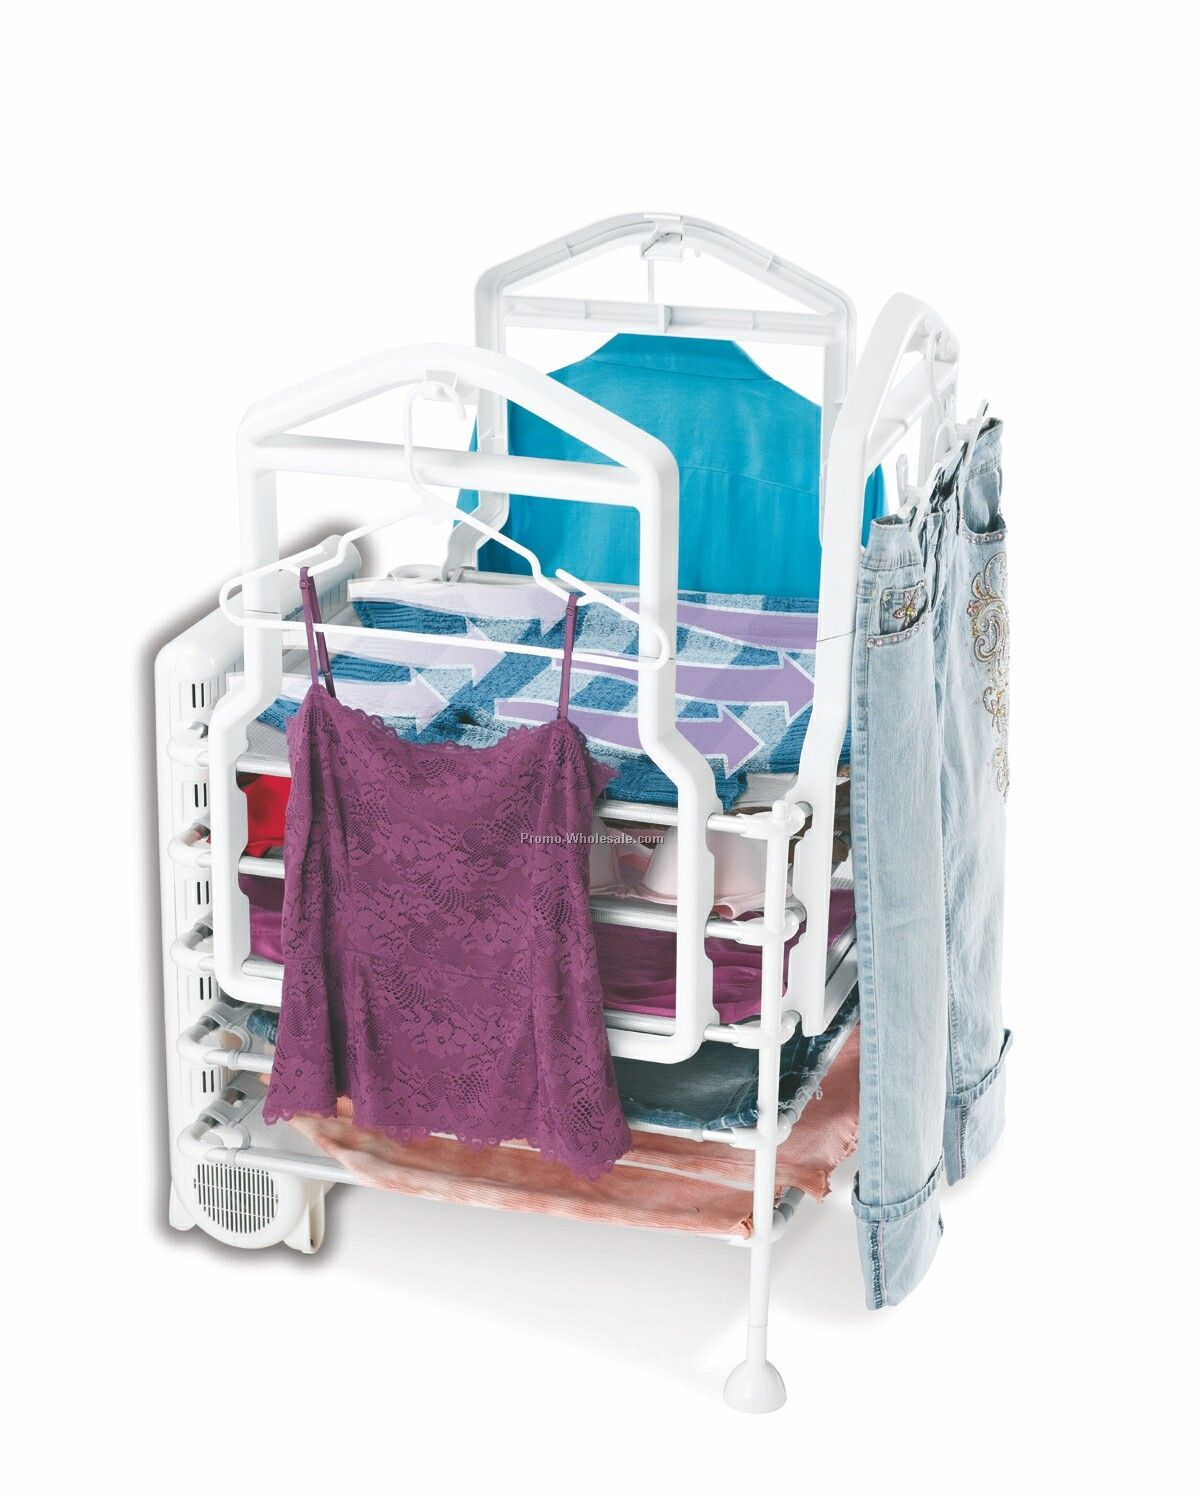 Hamilton Beach Quick Dry Deluxe 8 Way Garment Drying Station